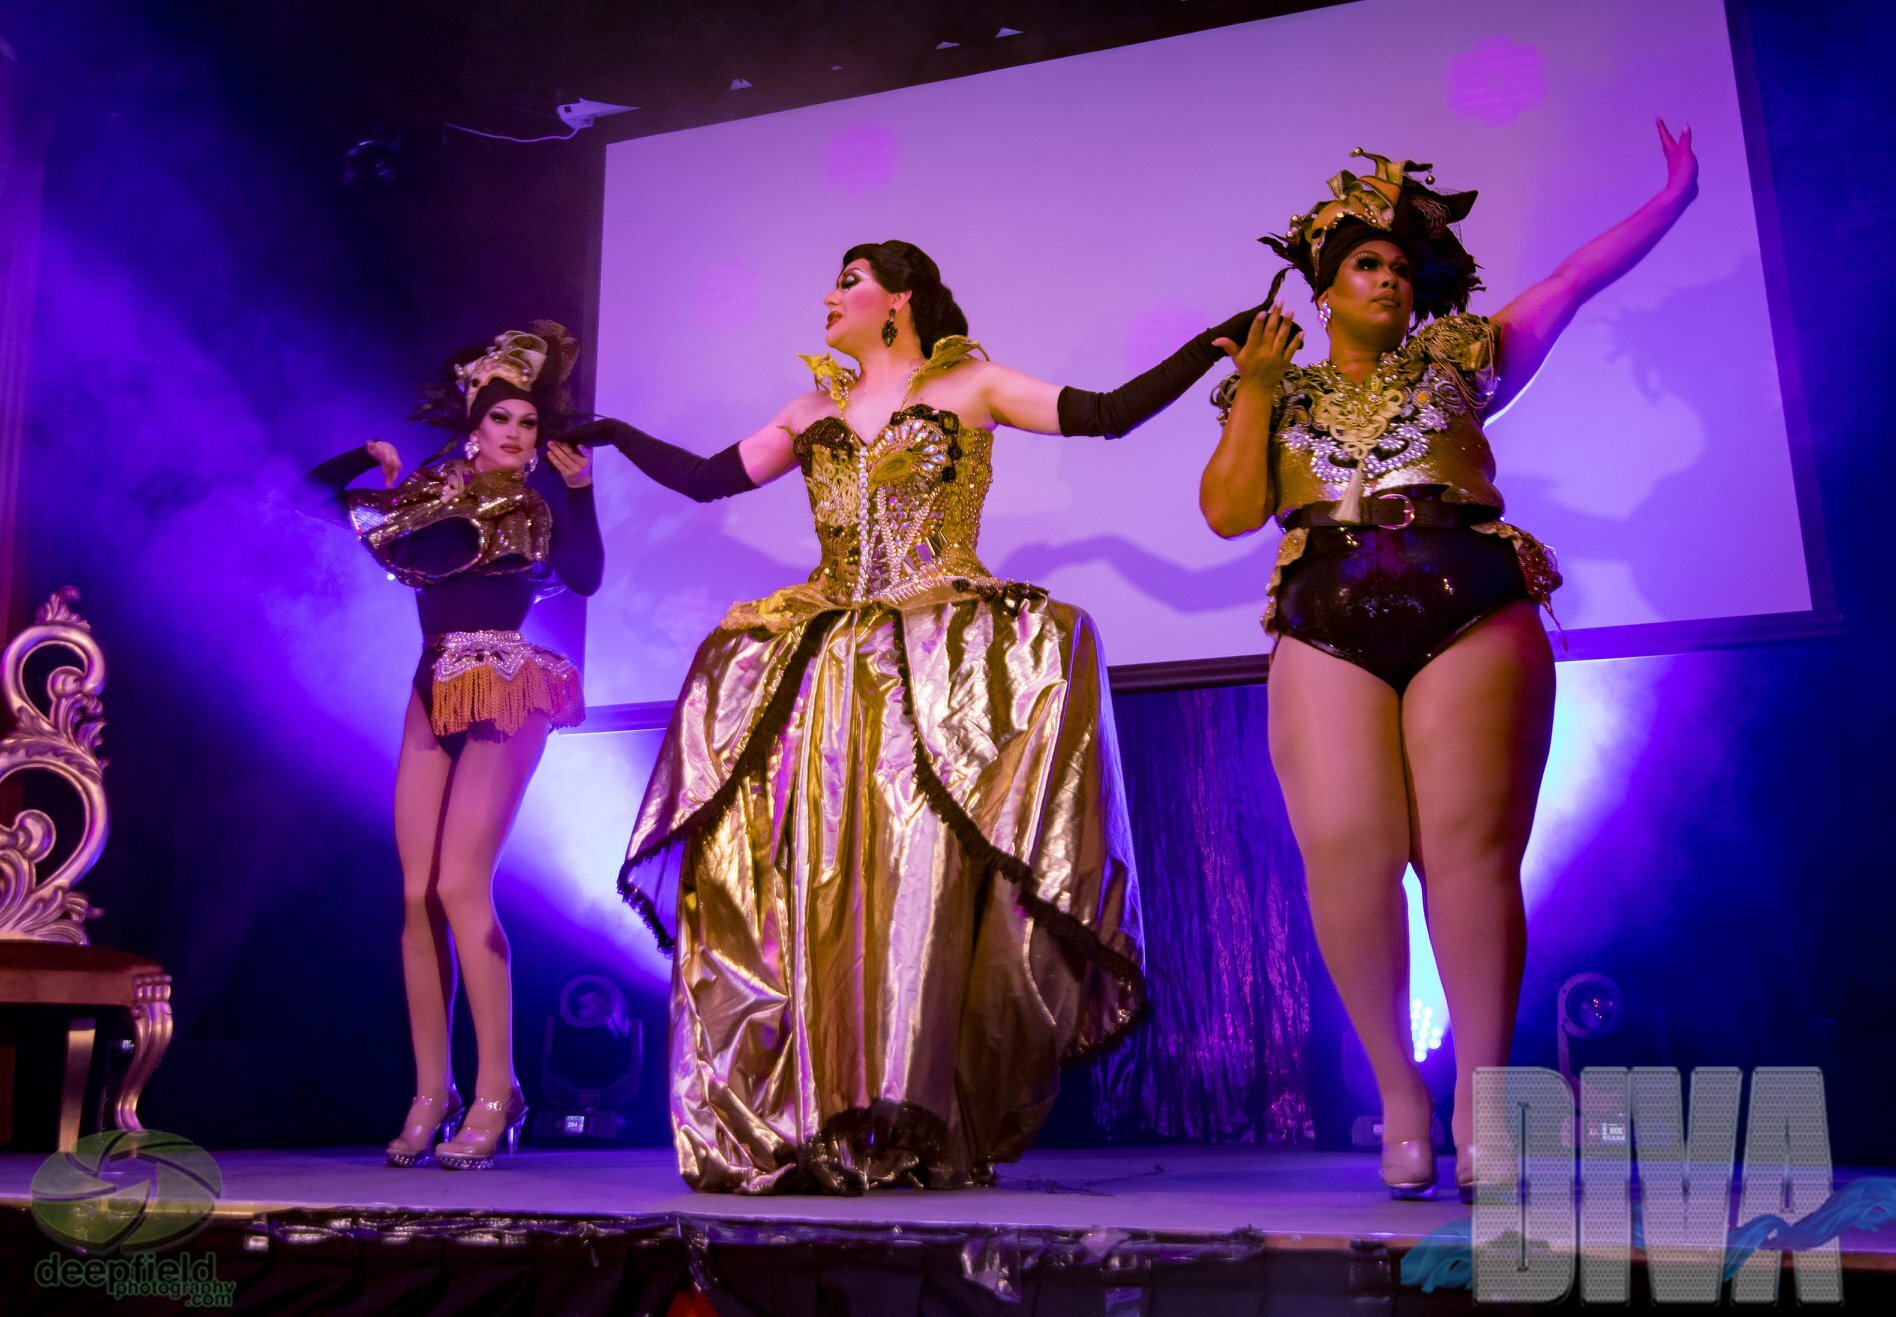 masqueerade-arq-sydney-show-of-the-year-favourite-charisma-belle-sia-tequila-coco-jumbo-diva-awards-sydney-drag-queen-royalty-best-hire-drag-race-australia.jpg